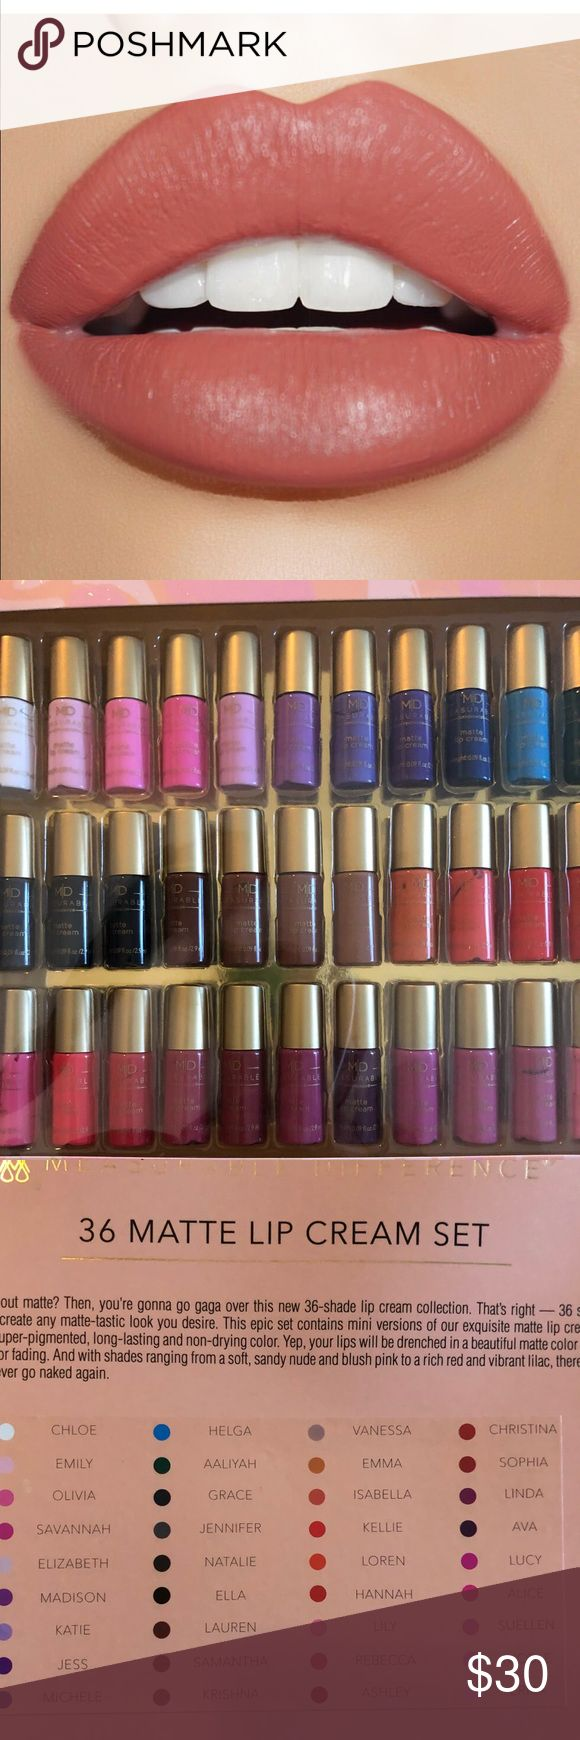 New 36 Matte Soft Cream lipsticks Collection! Listing is for a lip vault of matte lip colors. Soft cream formula. Set includes  a wide variety of 36 liquid lipstick colors. There is a shade for everyone in this collection. Also good for holiday gifts! Description and color names in pics. 2.9ml tubes. Price firm  M. Difference Makeup Lipstick